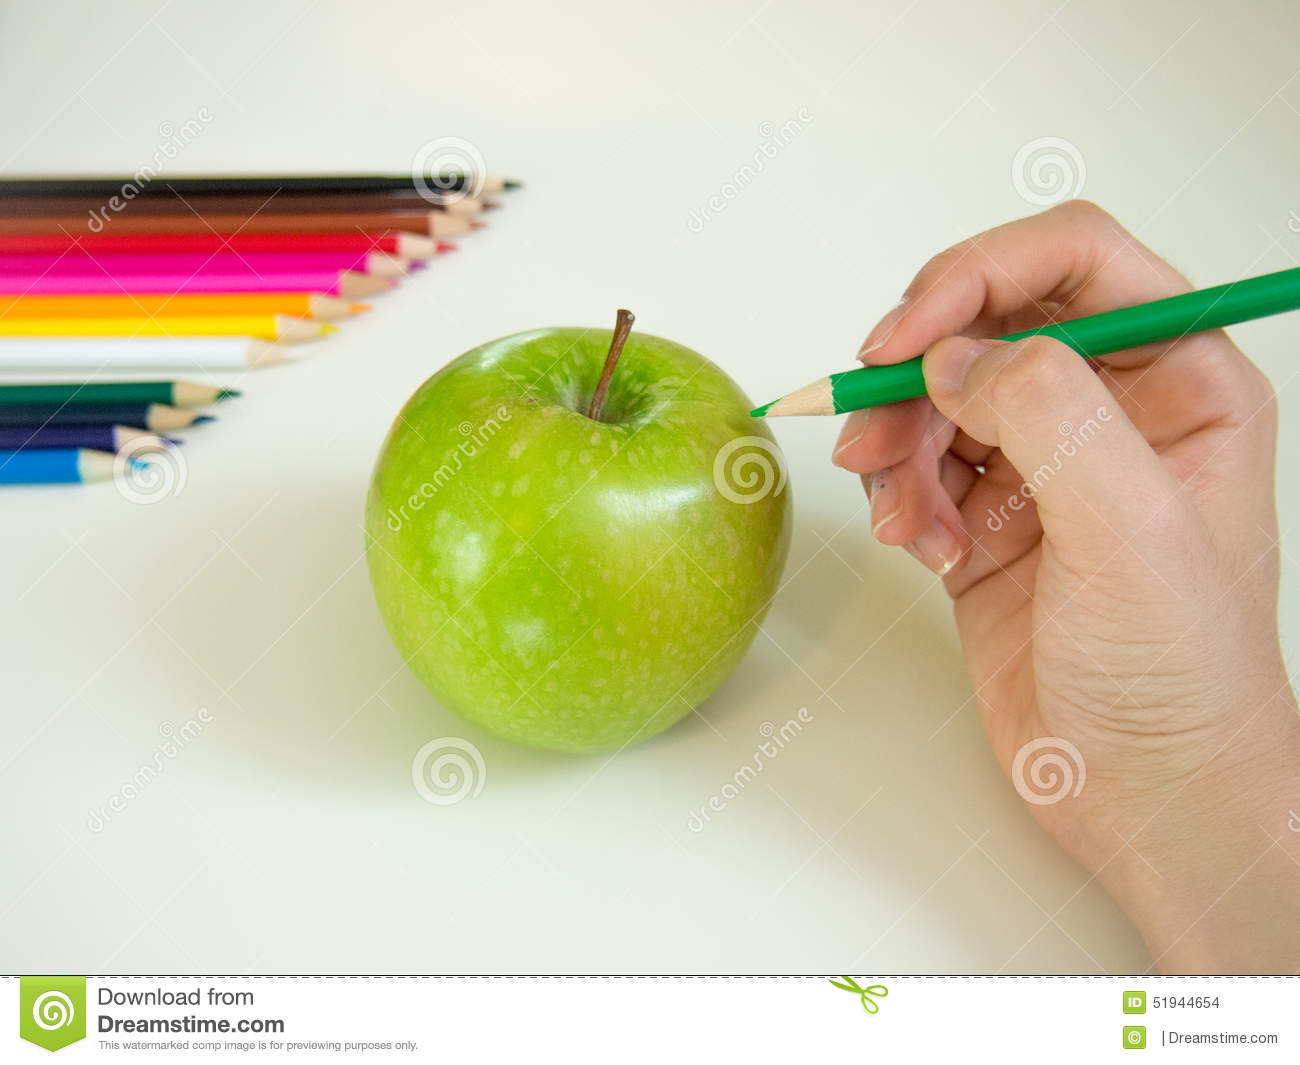 Looks like drawing an apple with the colored pencil